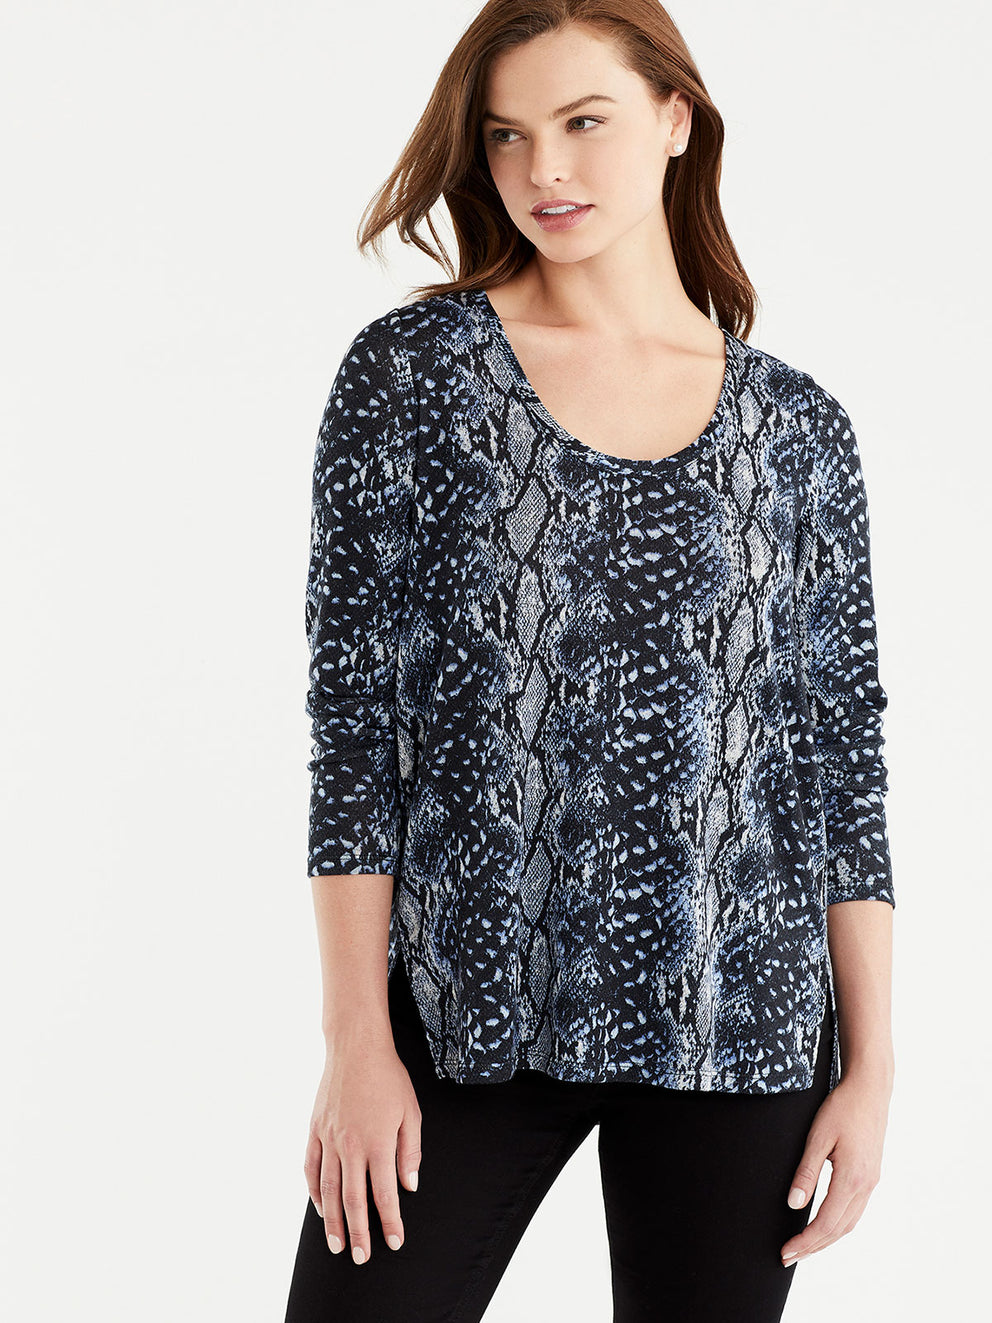 The Jones New York Snake Print V-Neck Tunic in color Blue Snake Print - Image Position 1